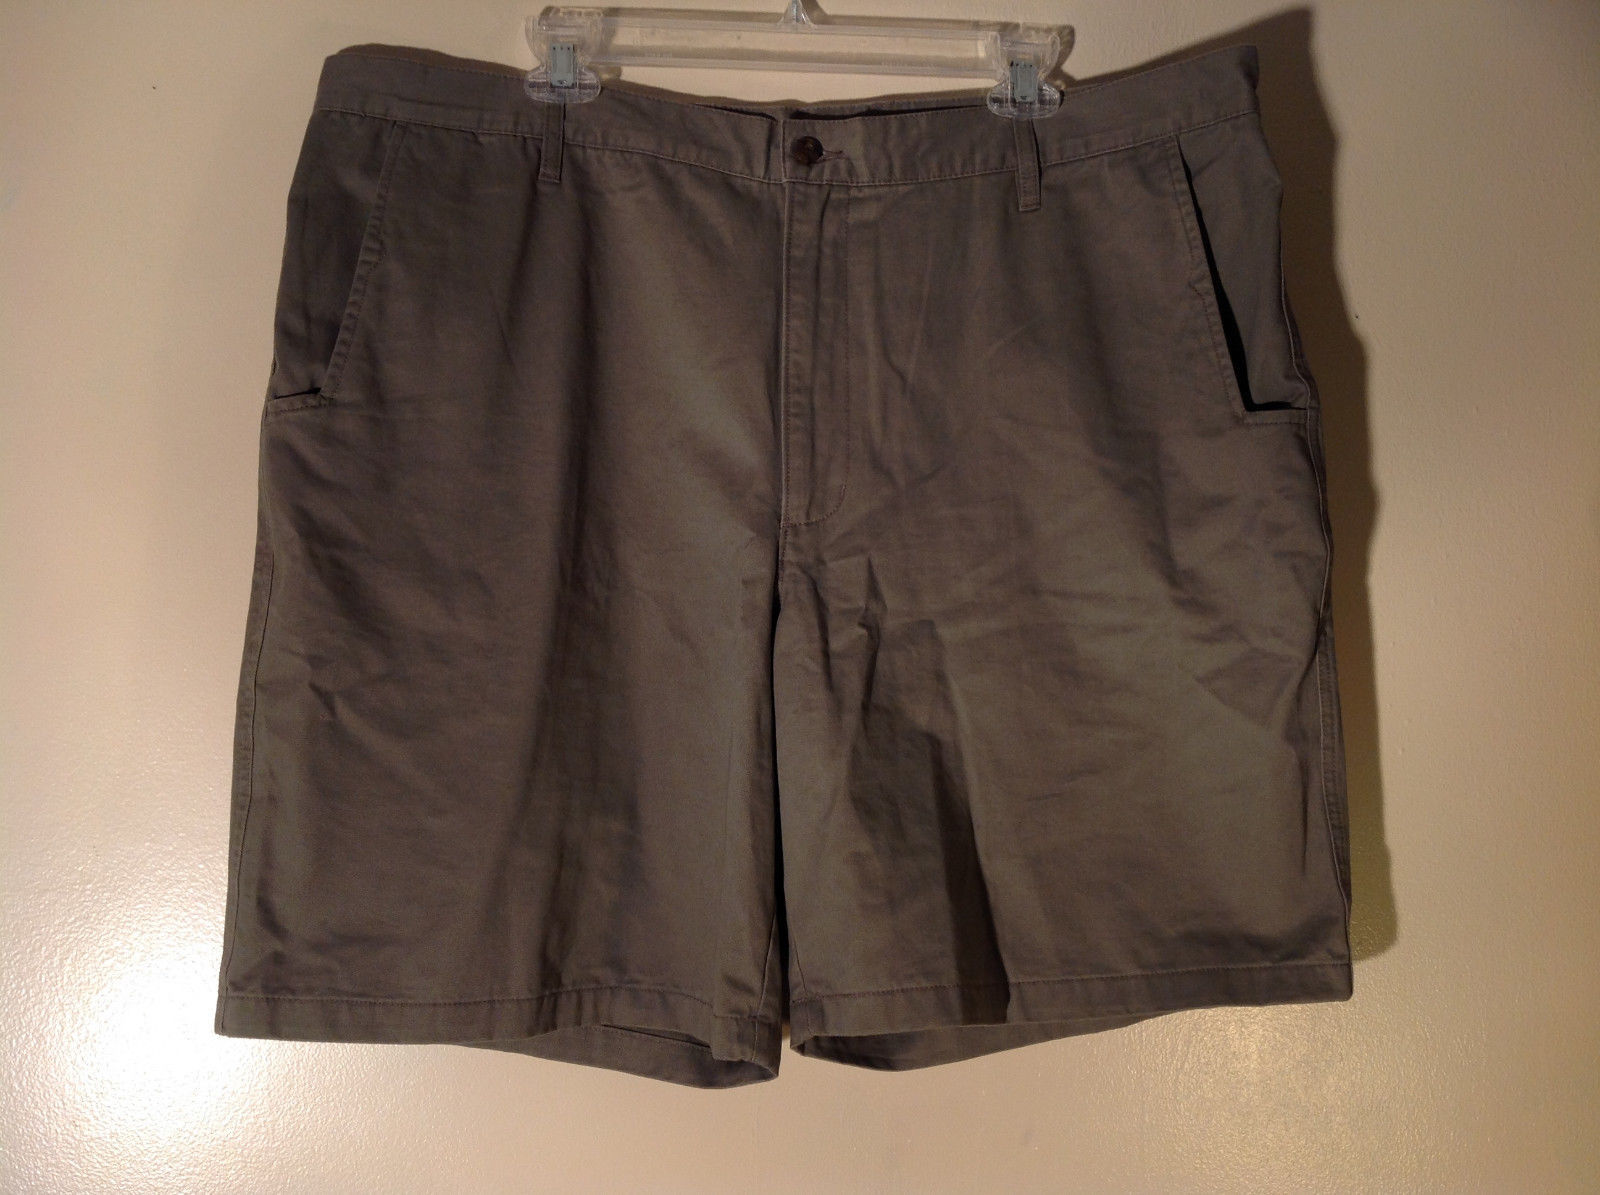 Gray Woolrich 100 Percent Cotton Shorts 2 Front Pockets 2 Back Pockets Size 40